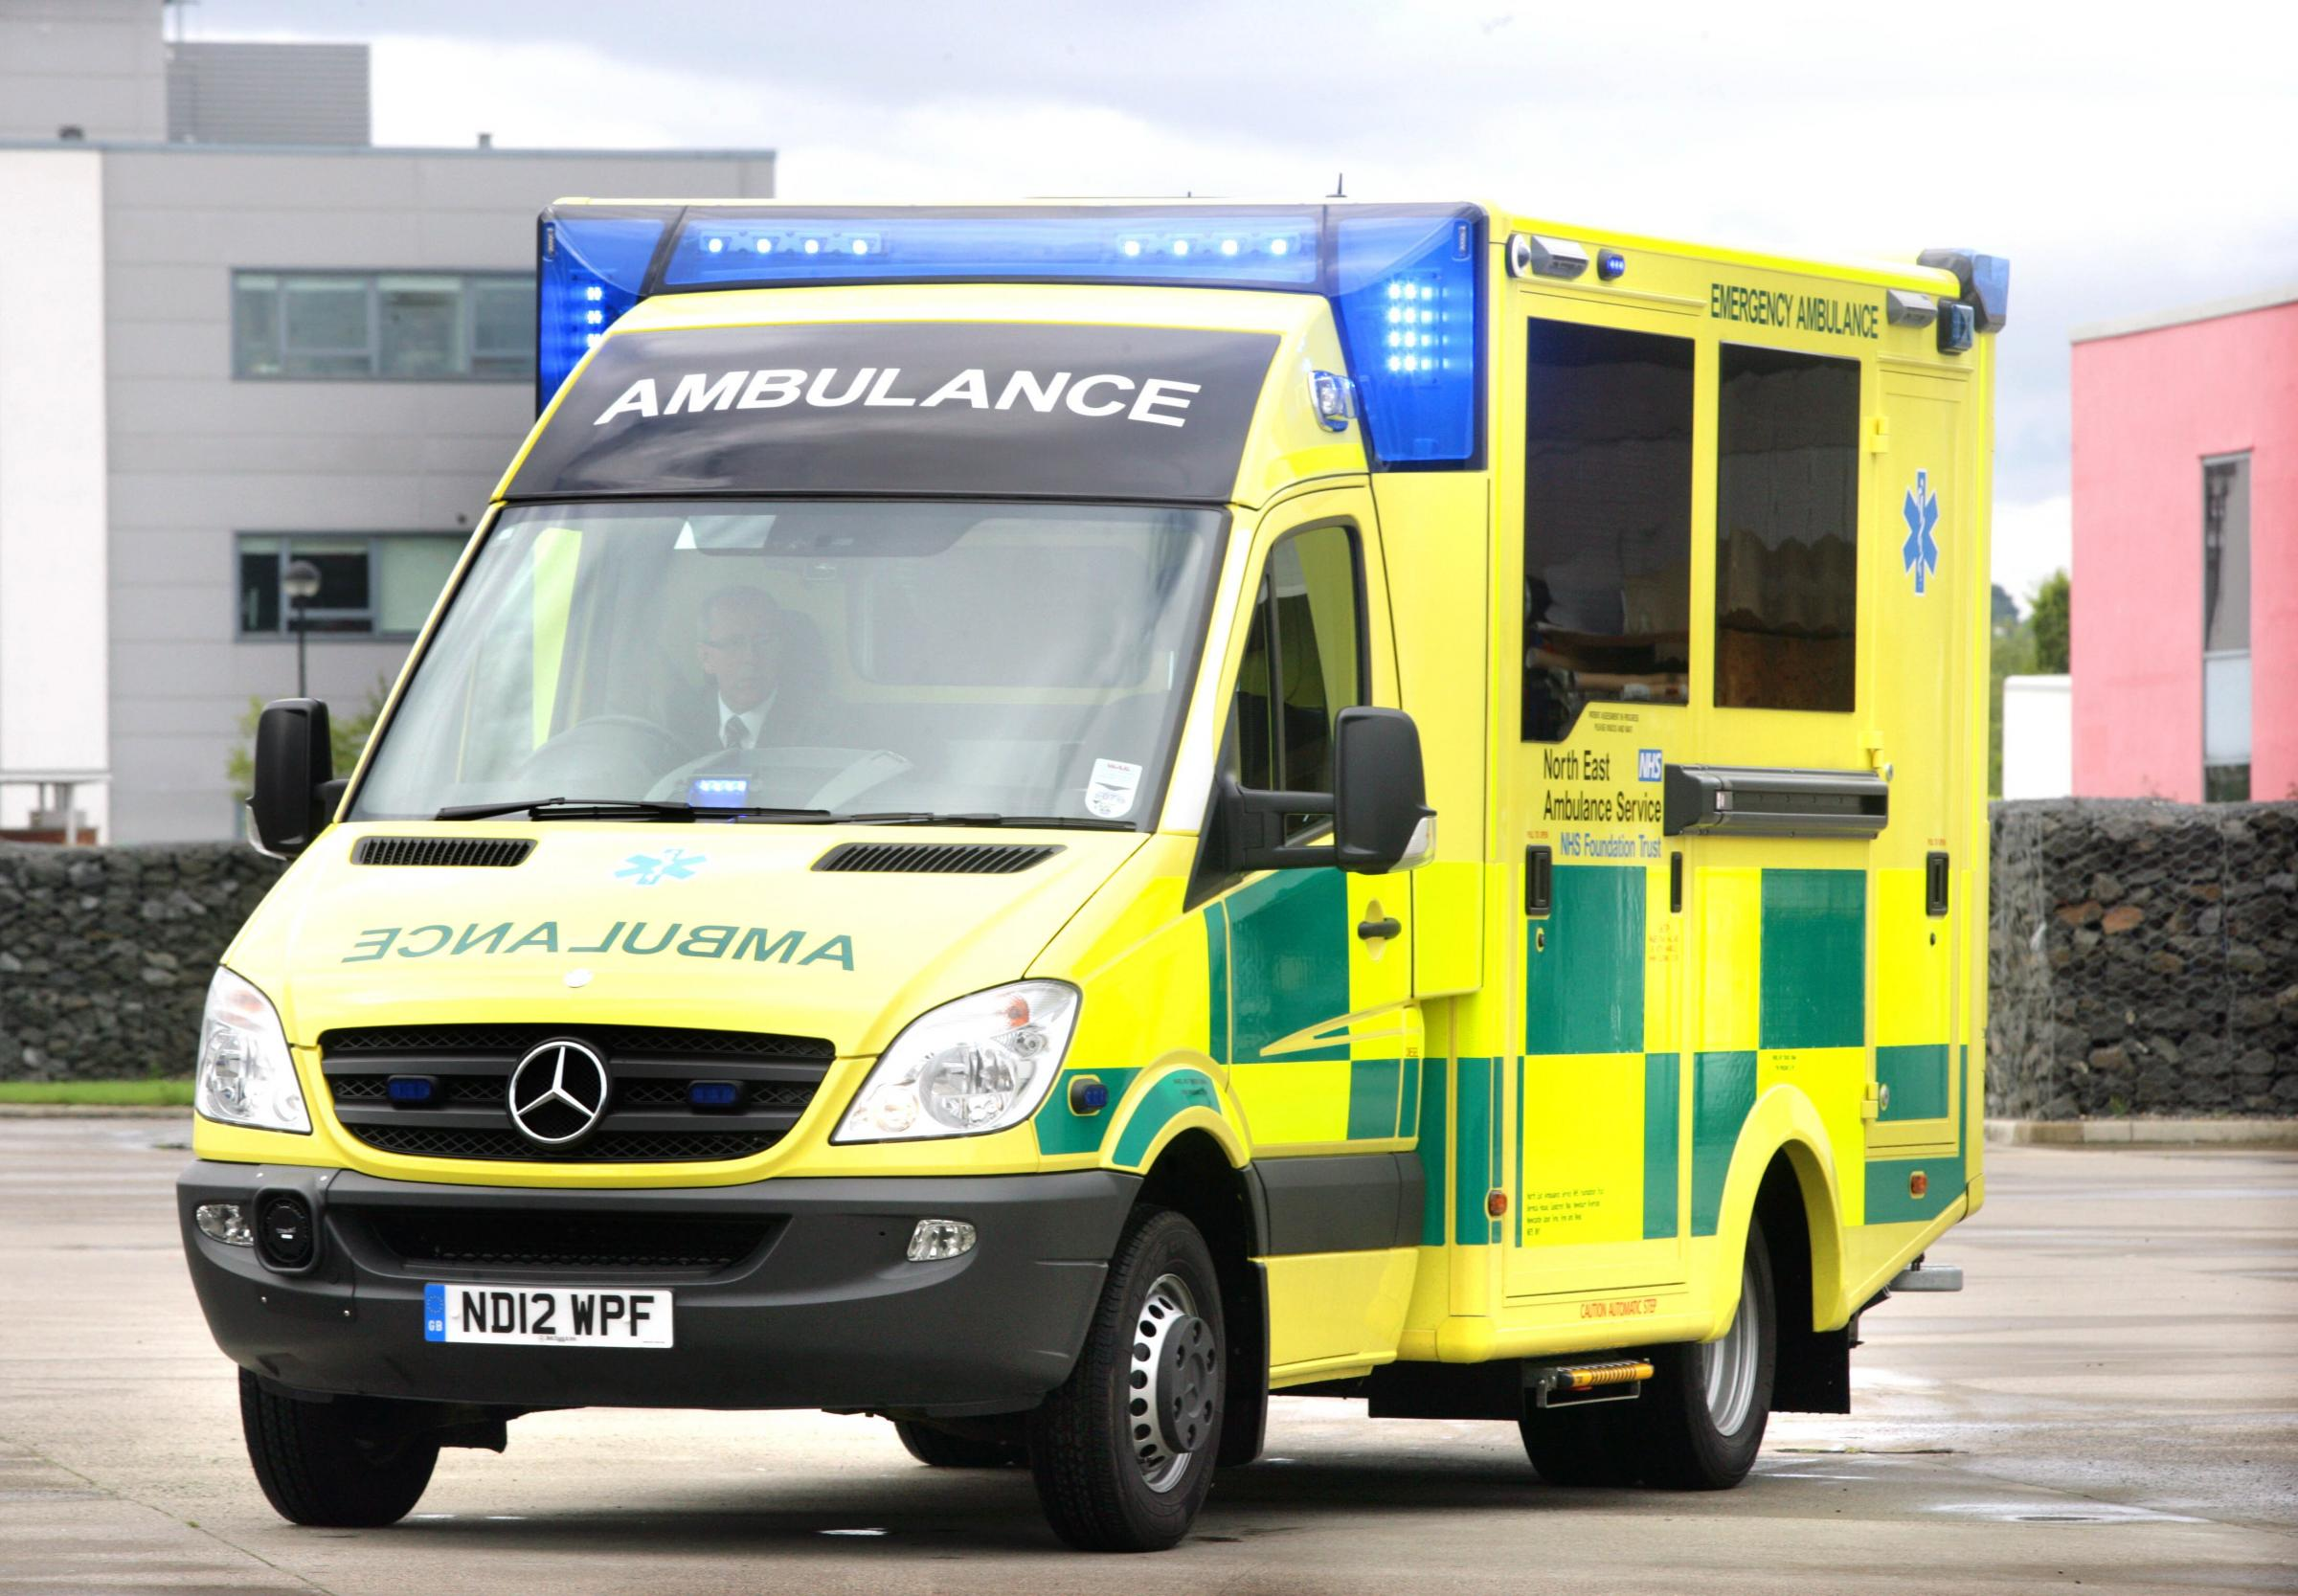 MP John Whittingdale feels the ambulance should be for local call-outs